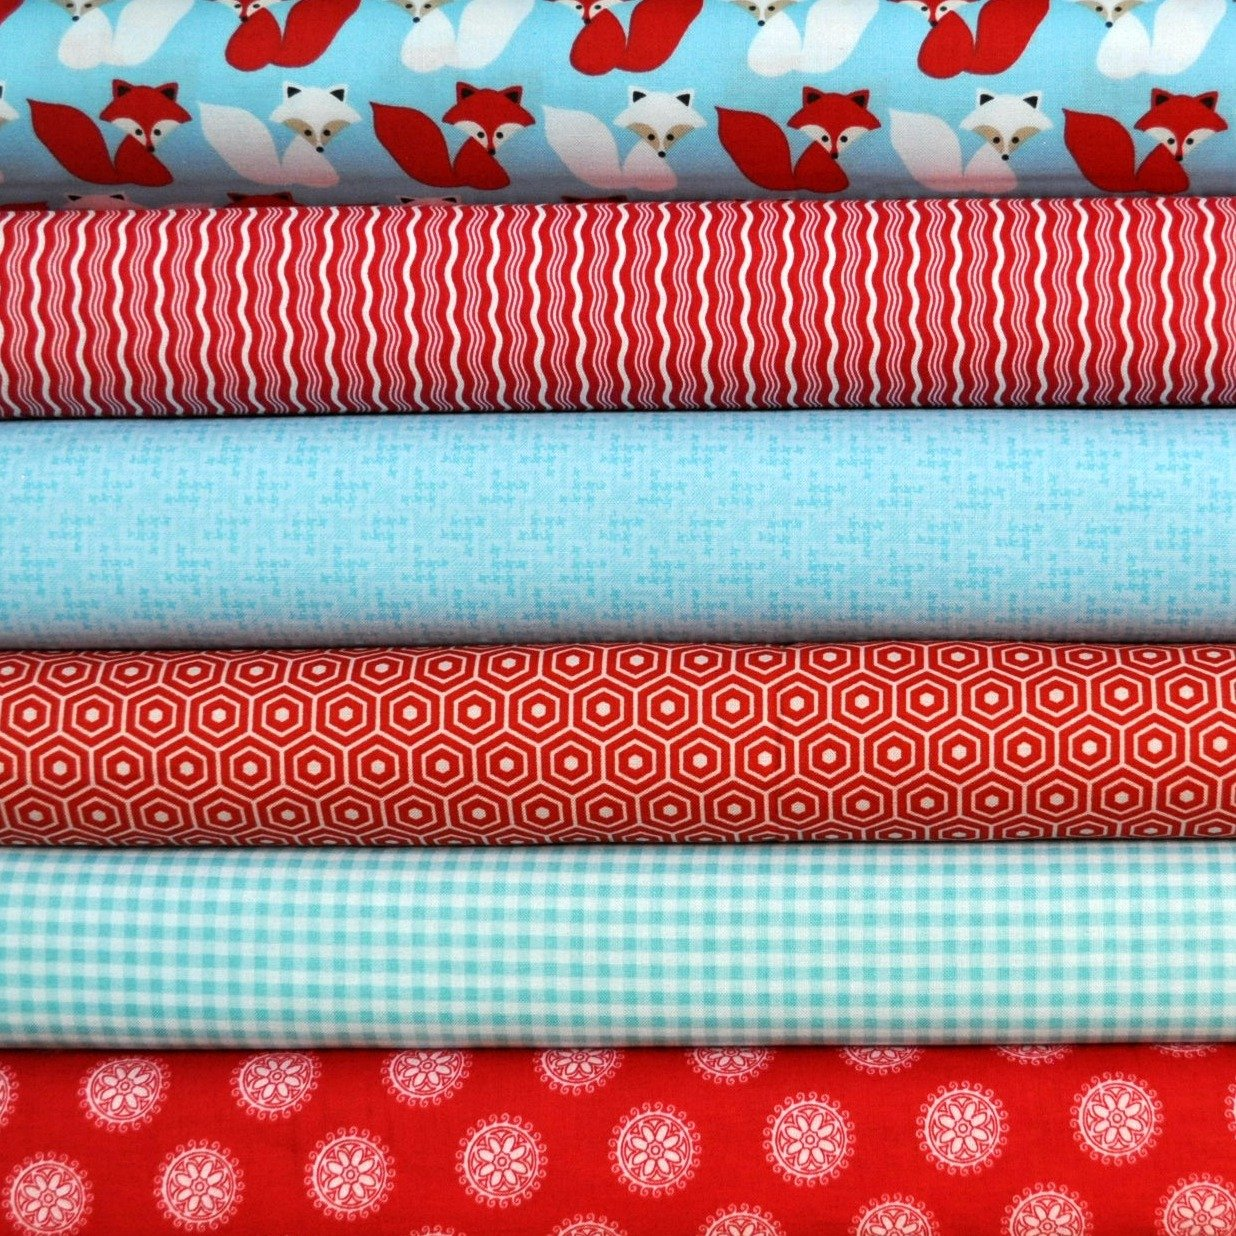 Woodland Pals 2 Blue Foxes 6 Fat Quarters Bundle by Mixed Designers, 1 1/2 yards total Mixed manufacturers